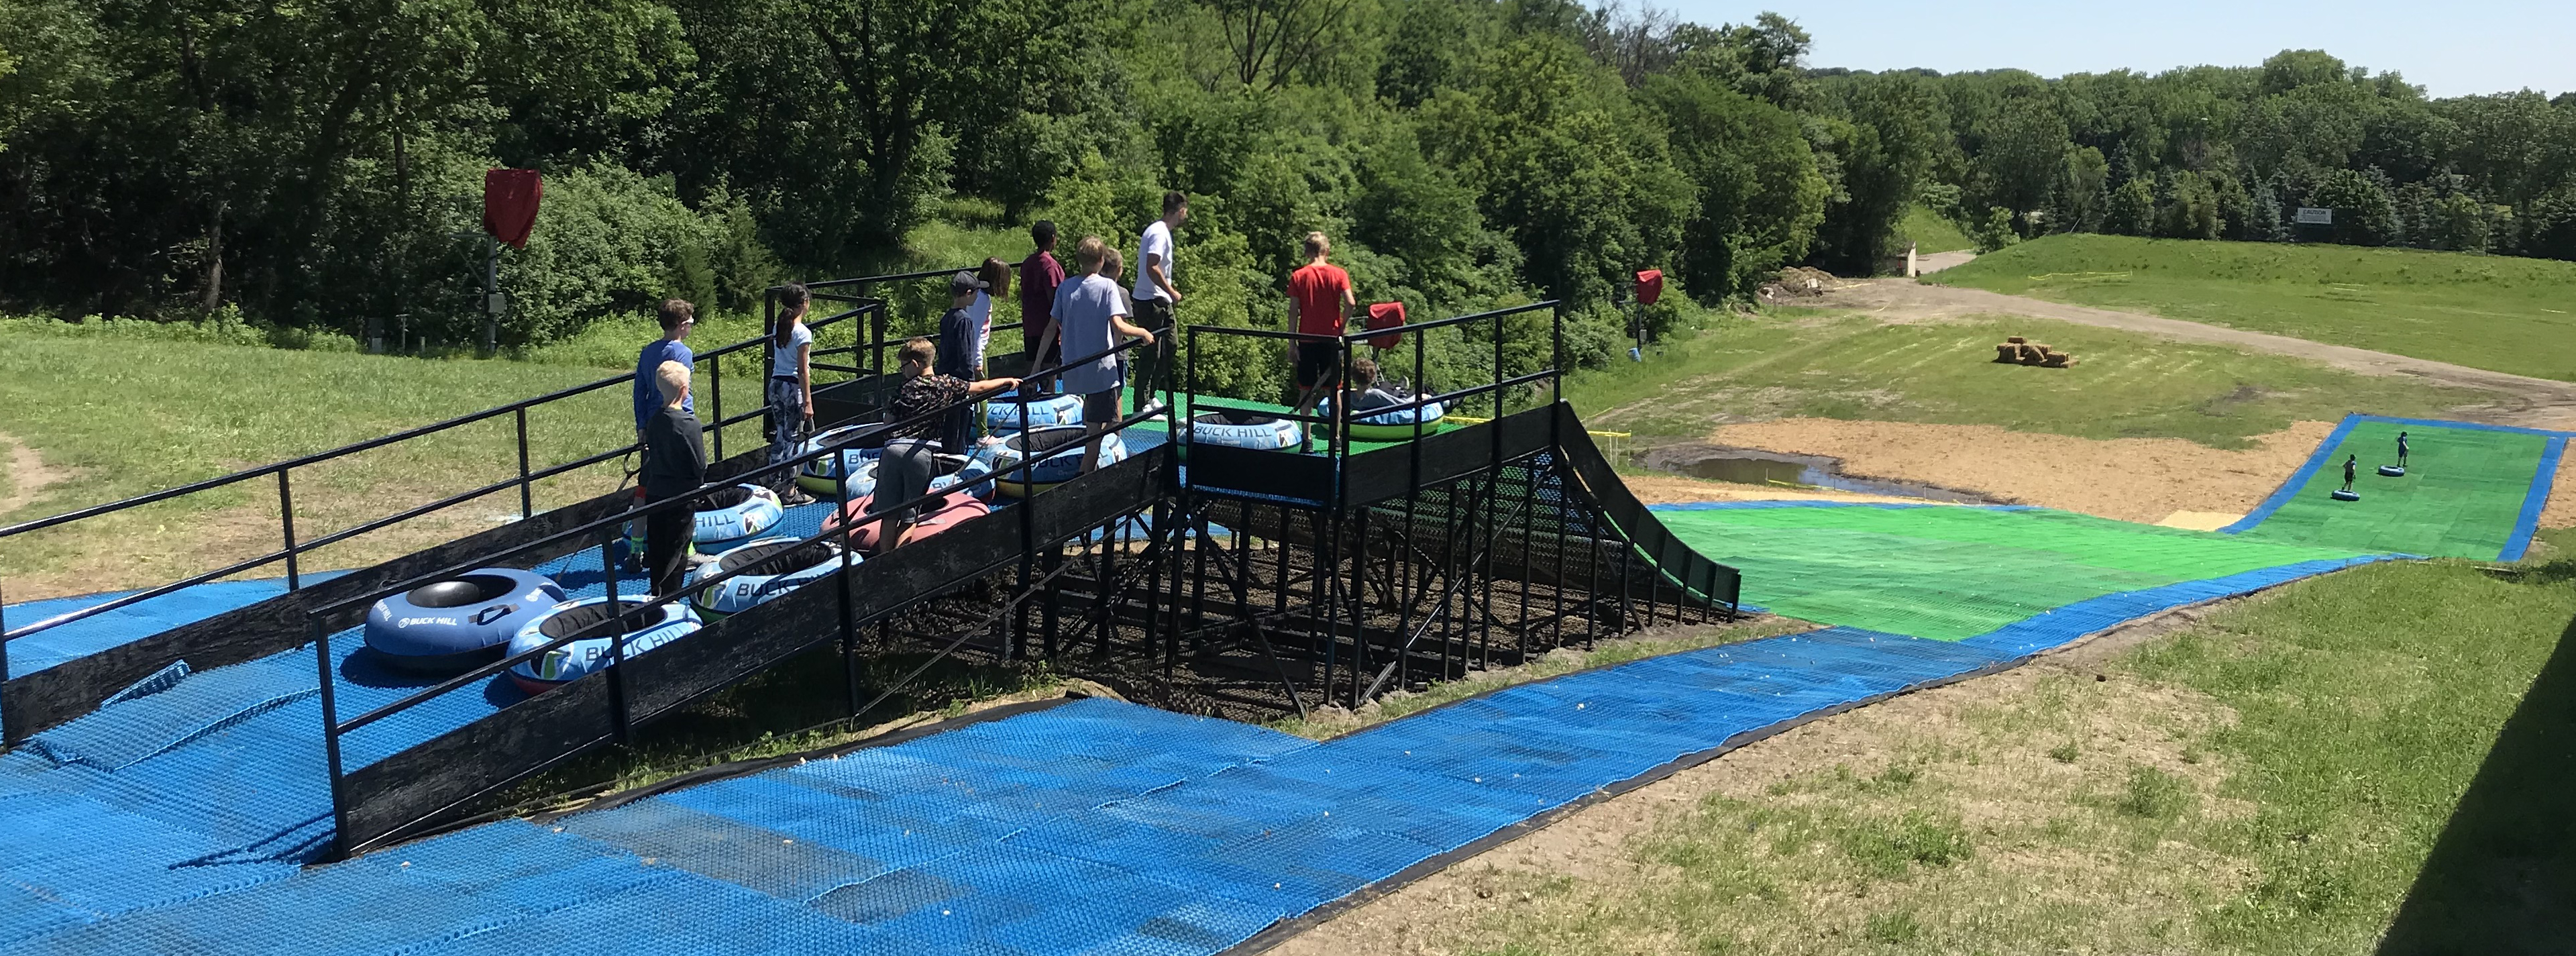 Top of tubing hill in summer time